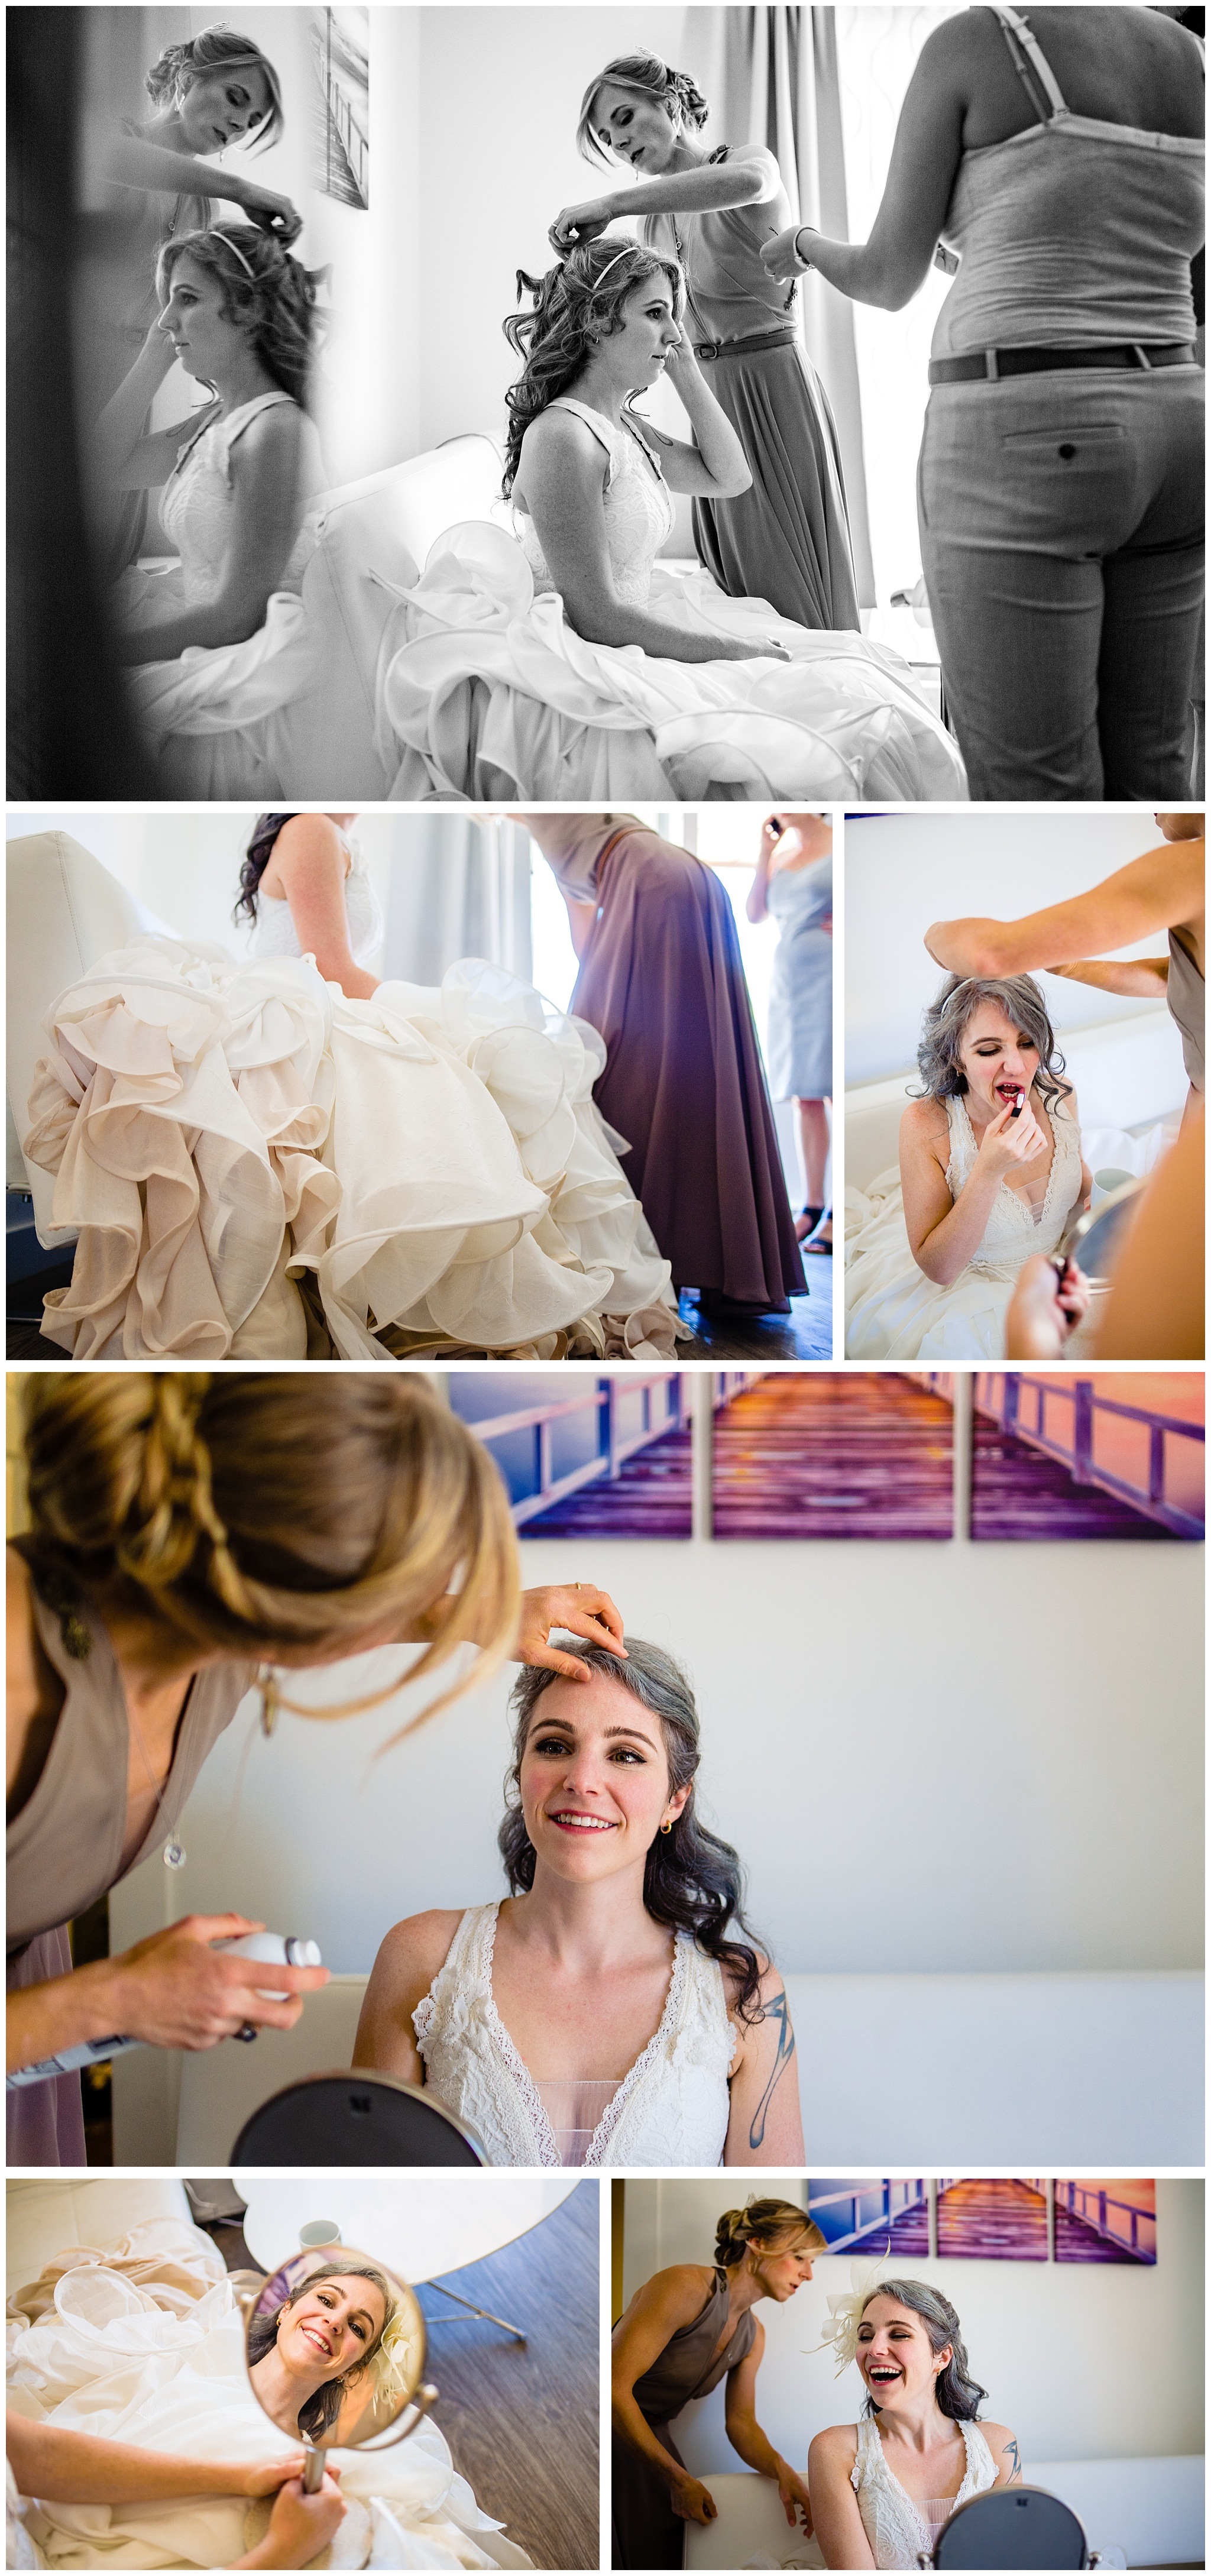 Bride getting ready before Cuckoo Trattoria and Pizzeria Wedding Photographer Vancouver Island Coombs, BC Goats on the Roof Market. Eclectic Formal quirky DIY artistic wedding full of handmade details and laughter. #fun #candid #storytelling #storytellingphotographer #bride #groom #weddinginspo #realwedding #horns #handmade #DIYwedding #DIYinspo #handmaderings #nobouquet #outdoor #pizzeria